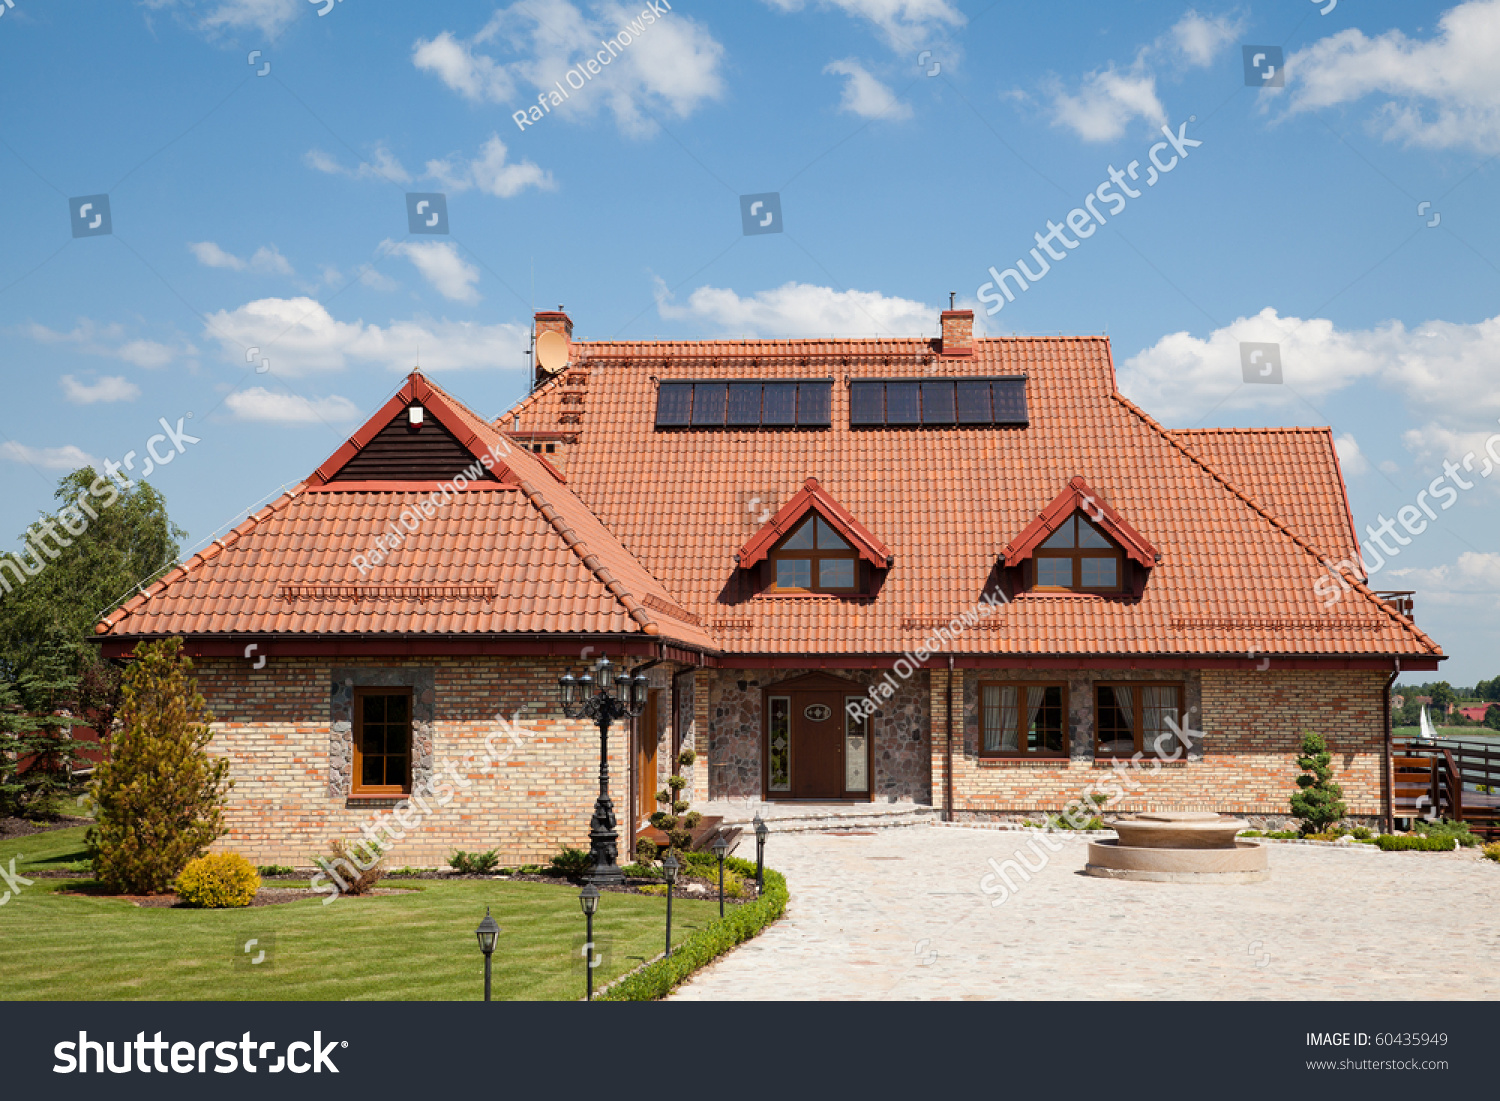 single family house brick red roof stock photo 60435949 shutterstock